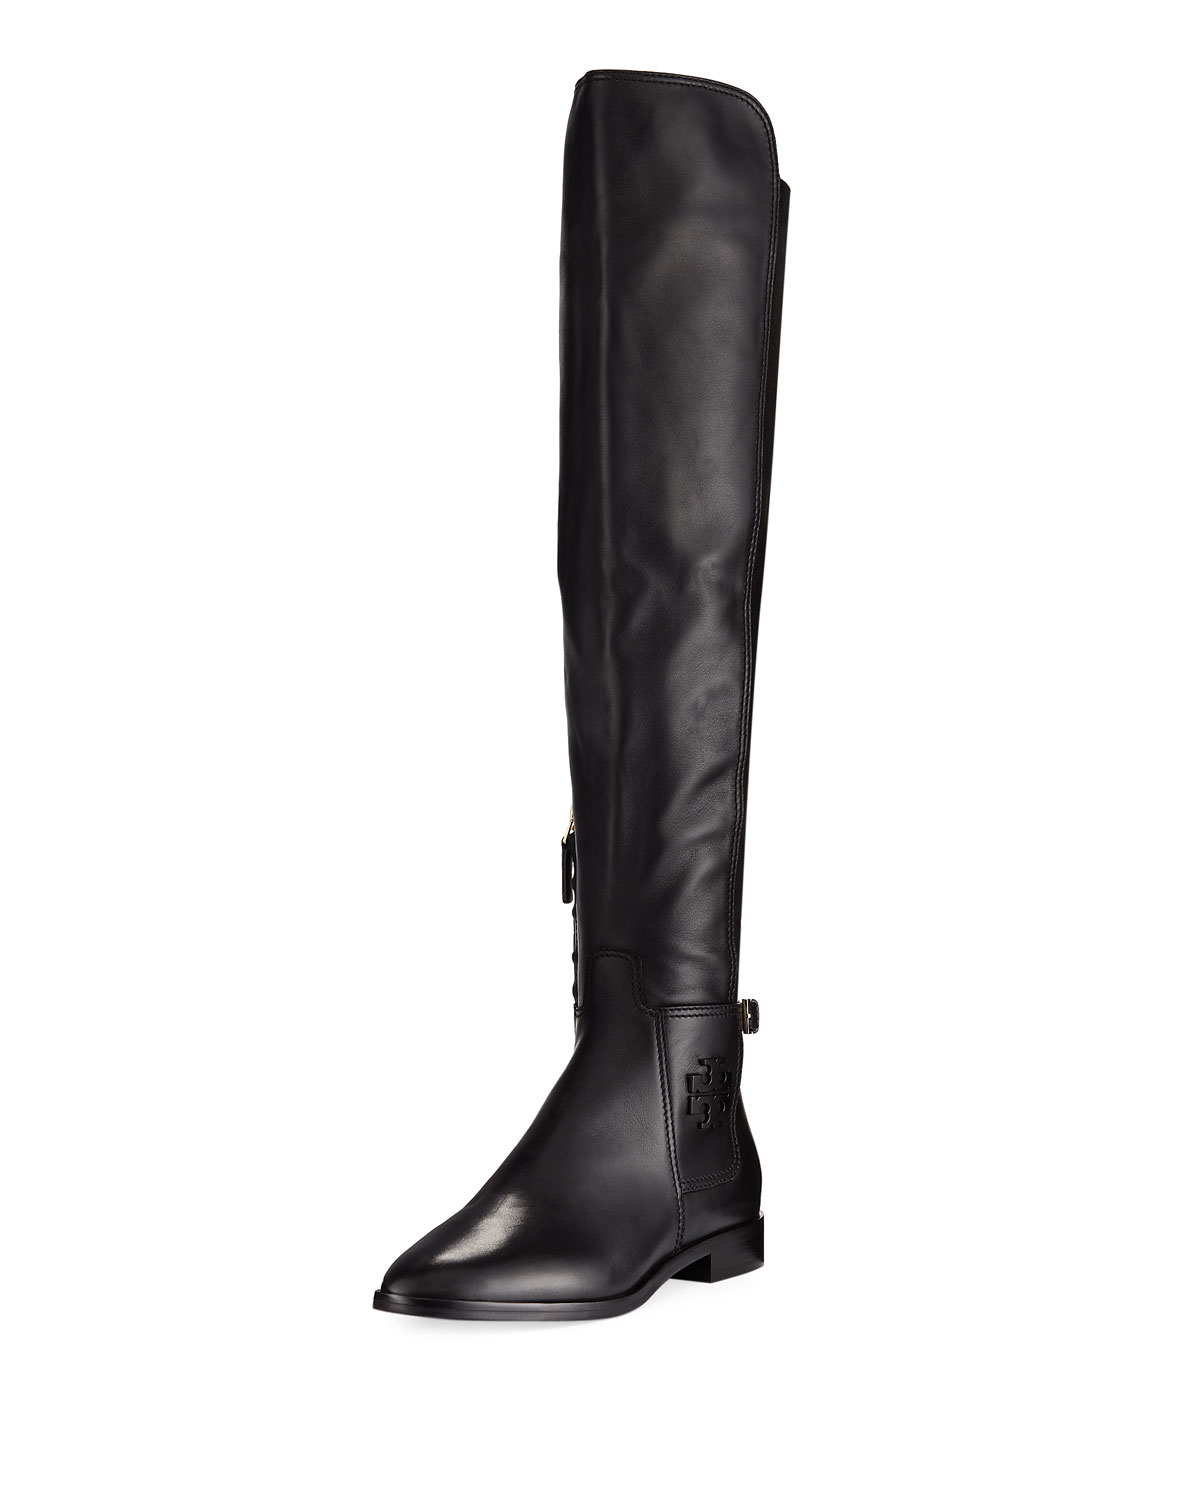 7cc2e08c1039 Tory Burch Wyatt Stretch Leather Over-The-Knee Boot